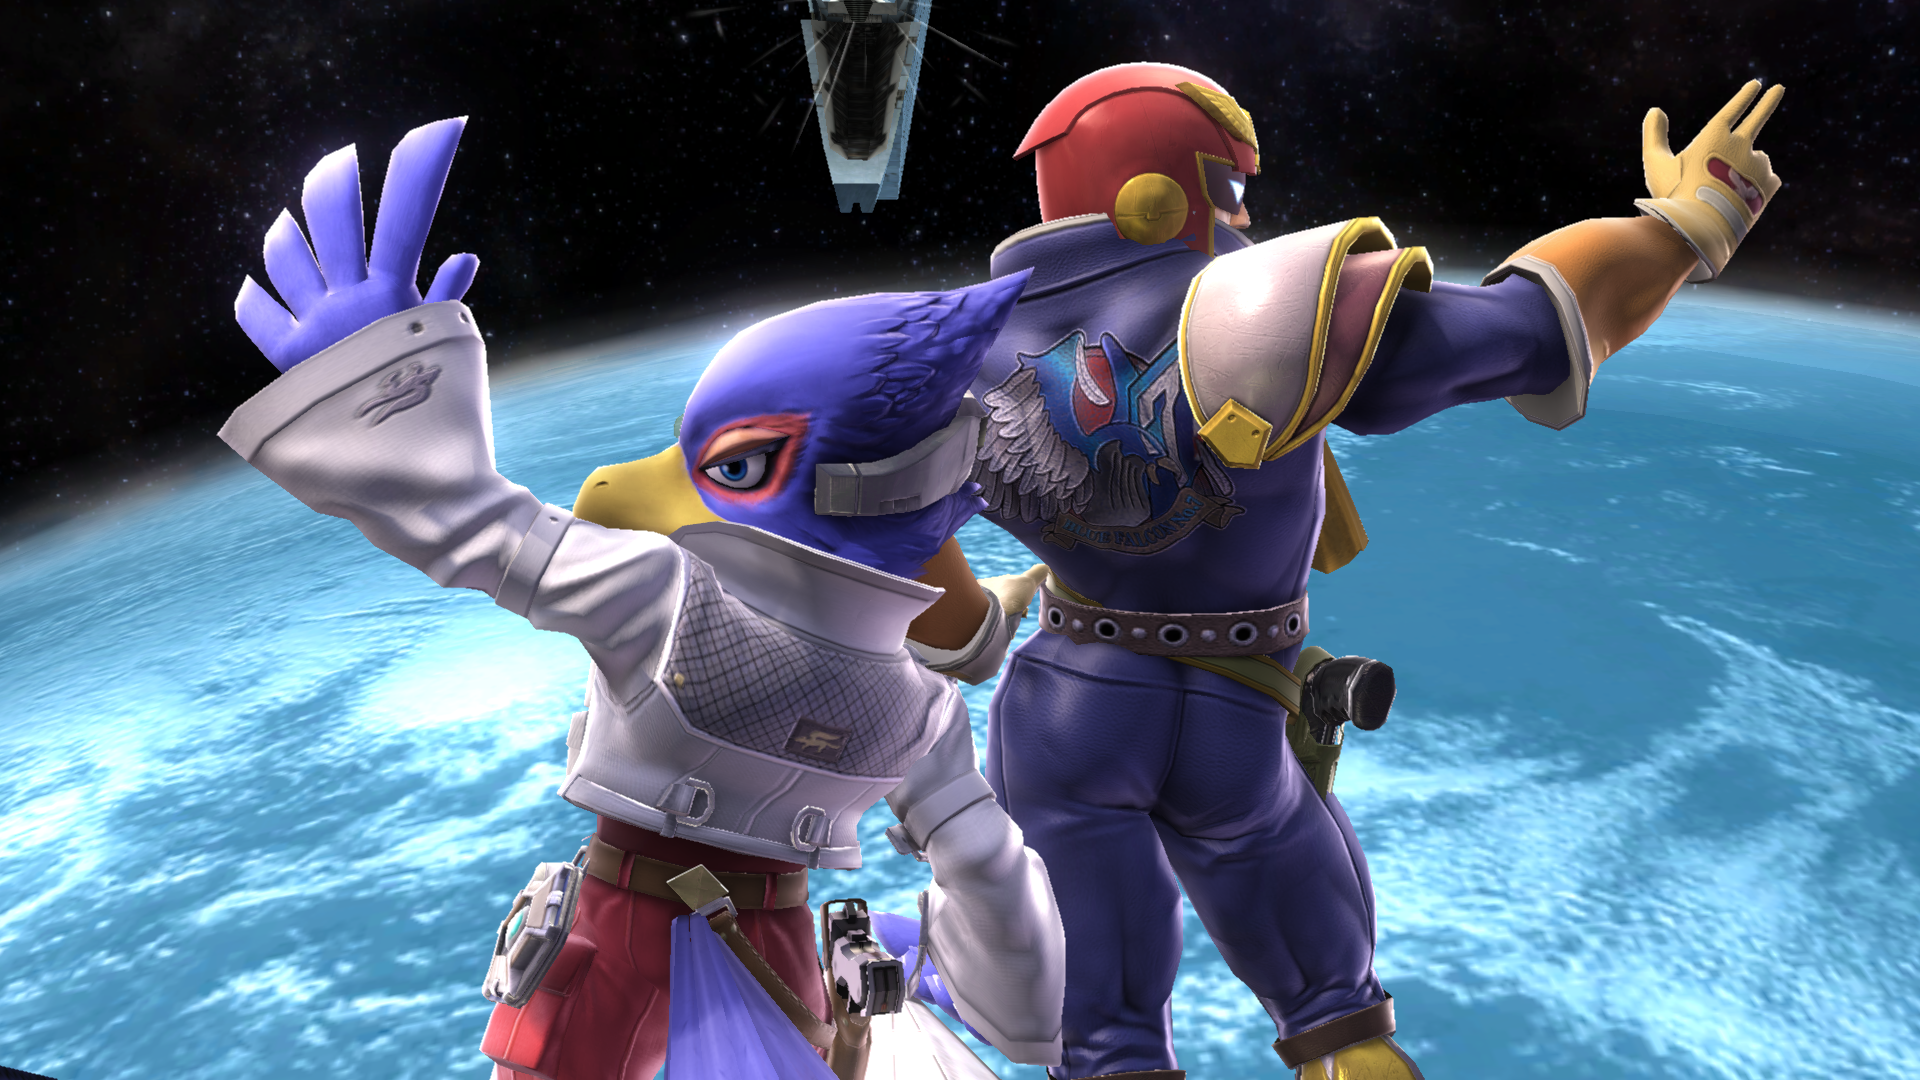 New captain falcon got so much cake doe